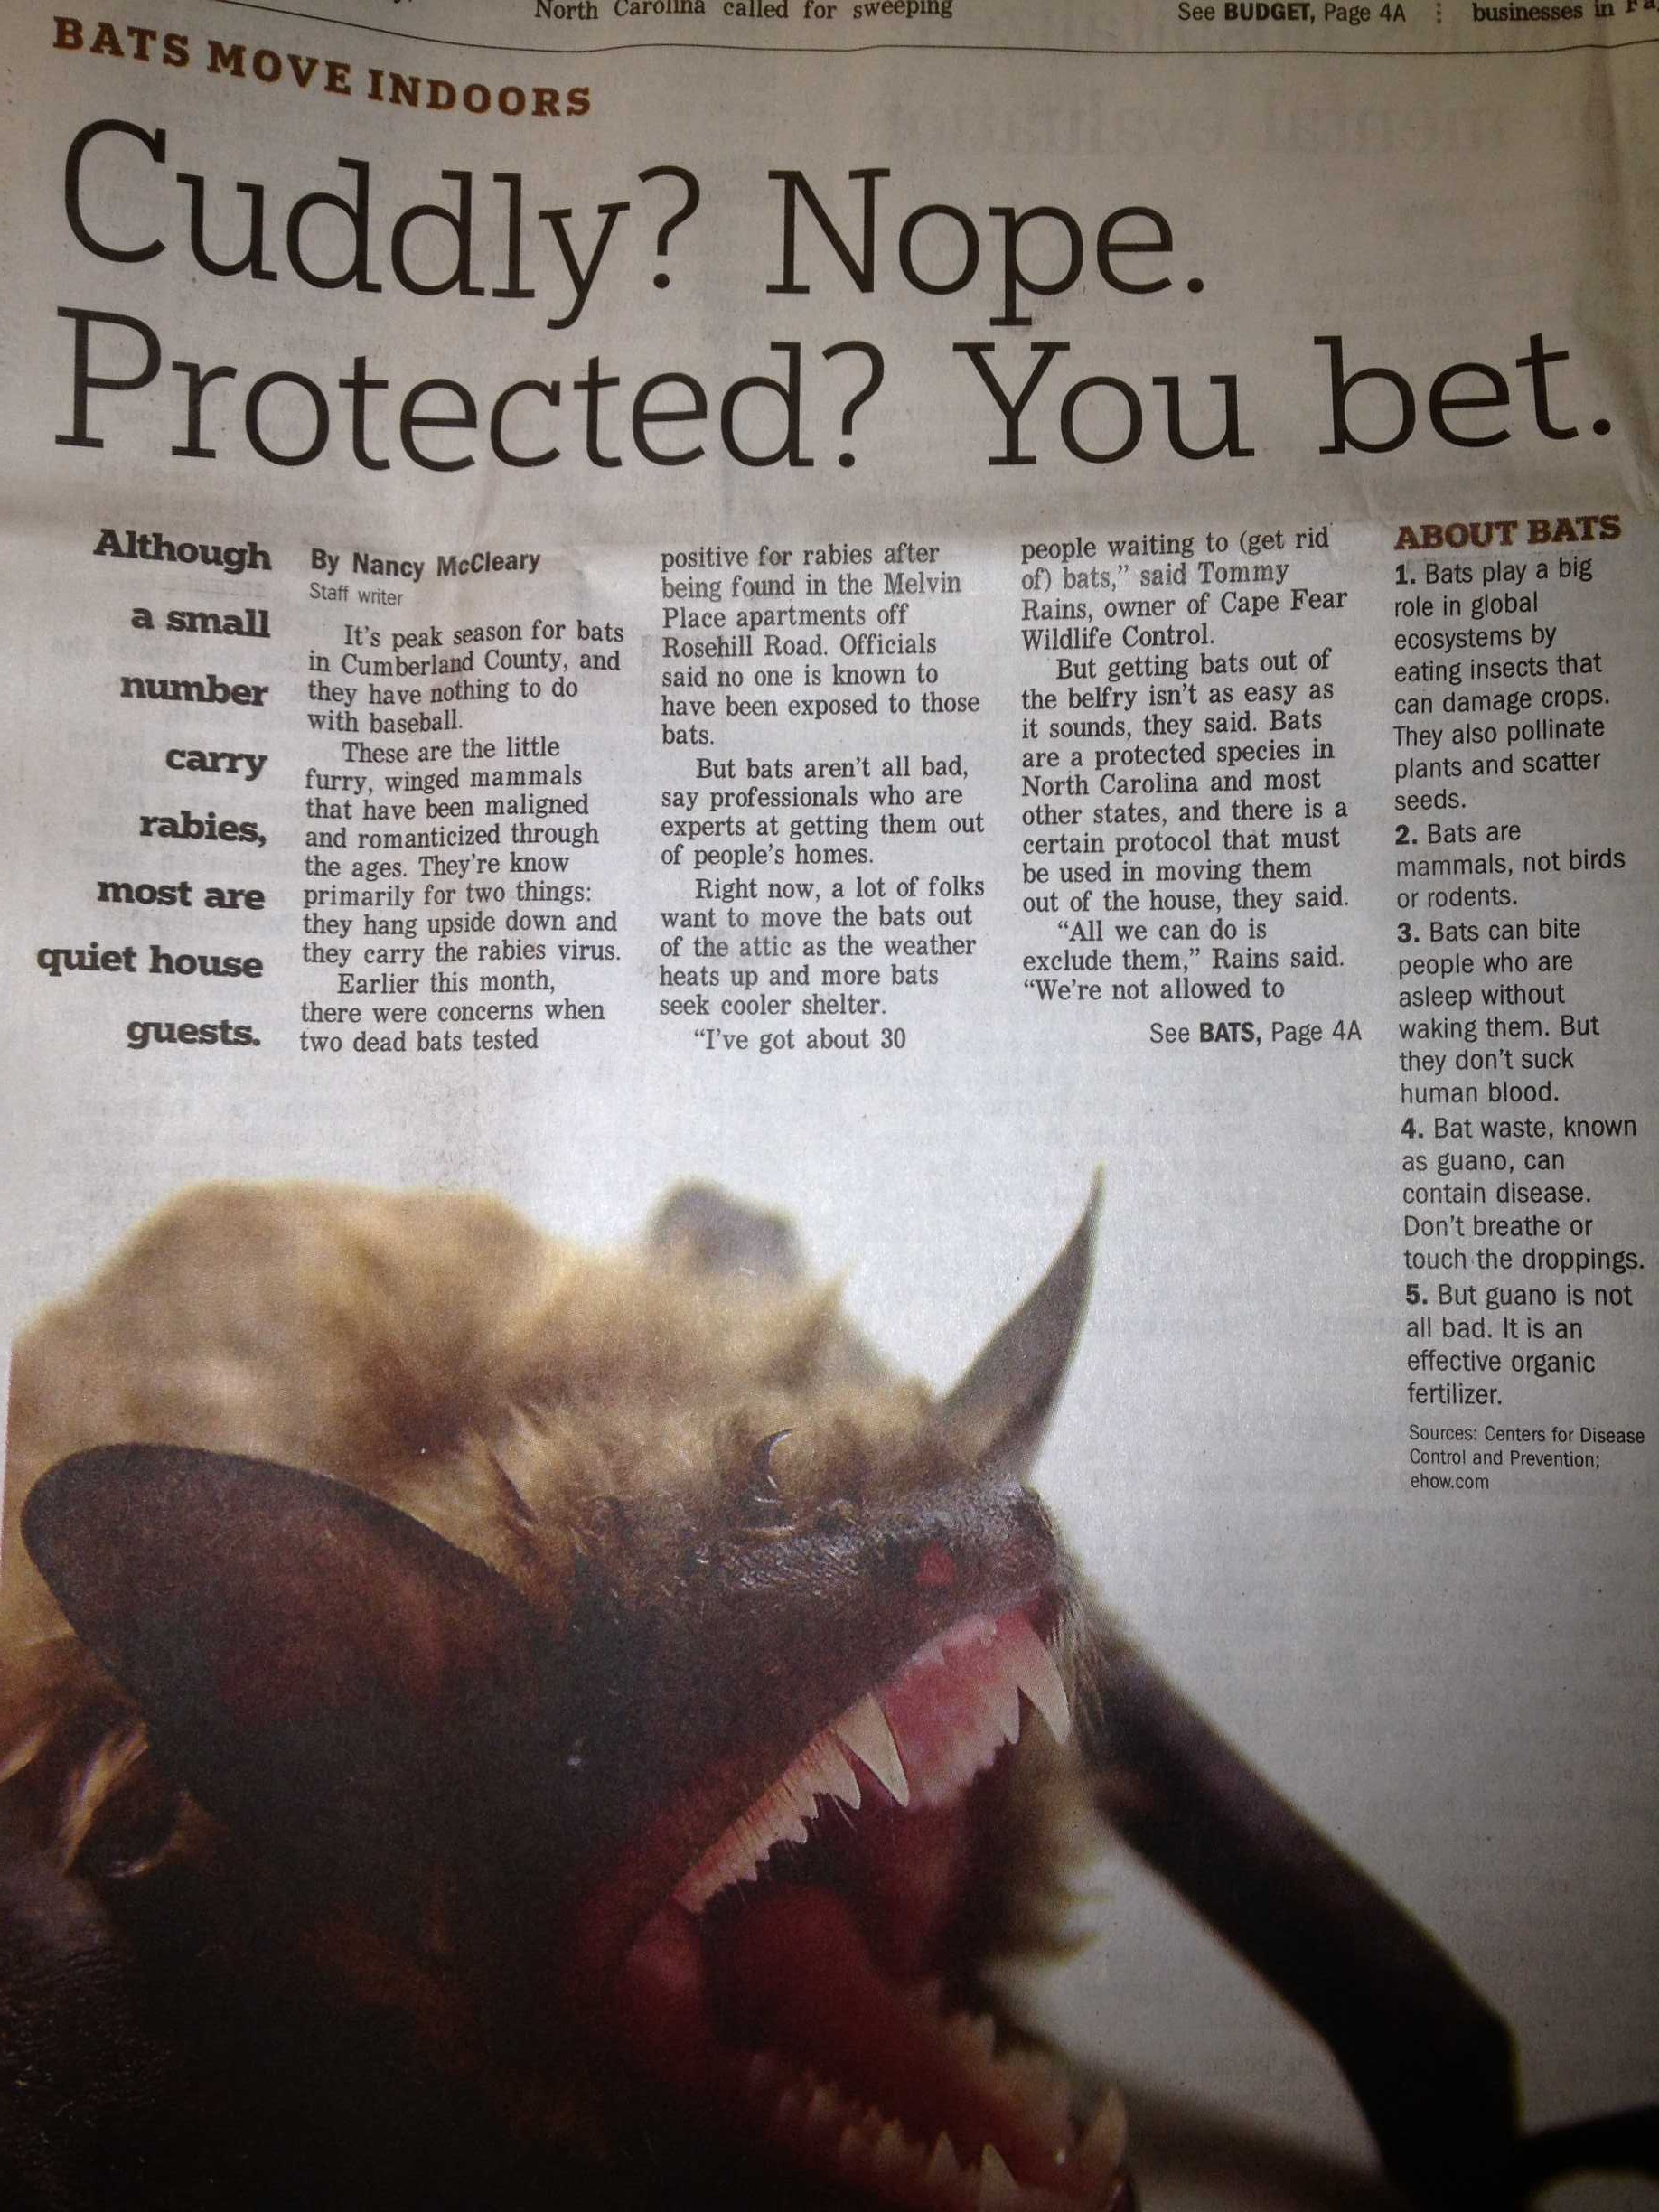 Article from the Fayetteville Observer on bats in which we were featured